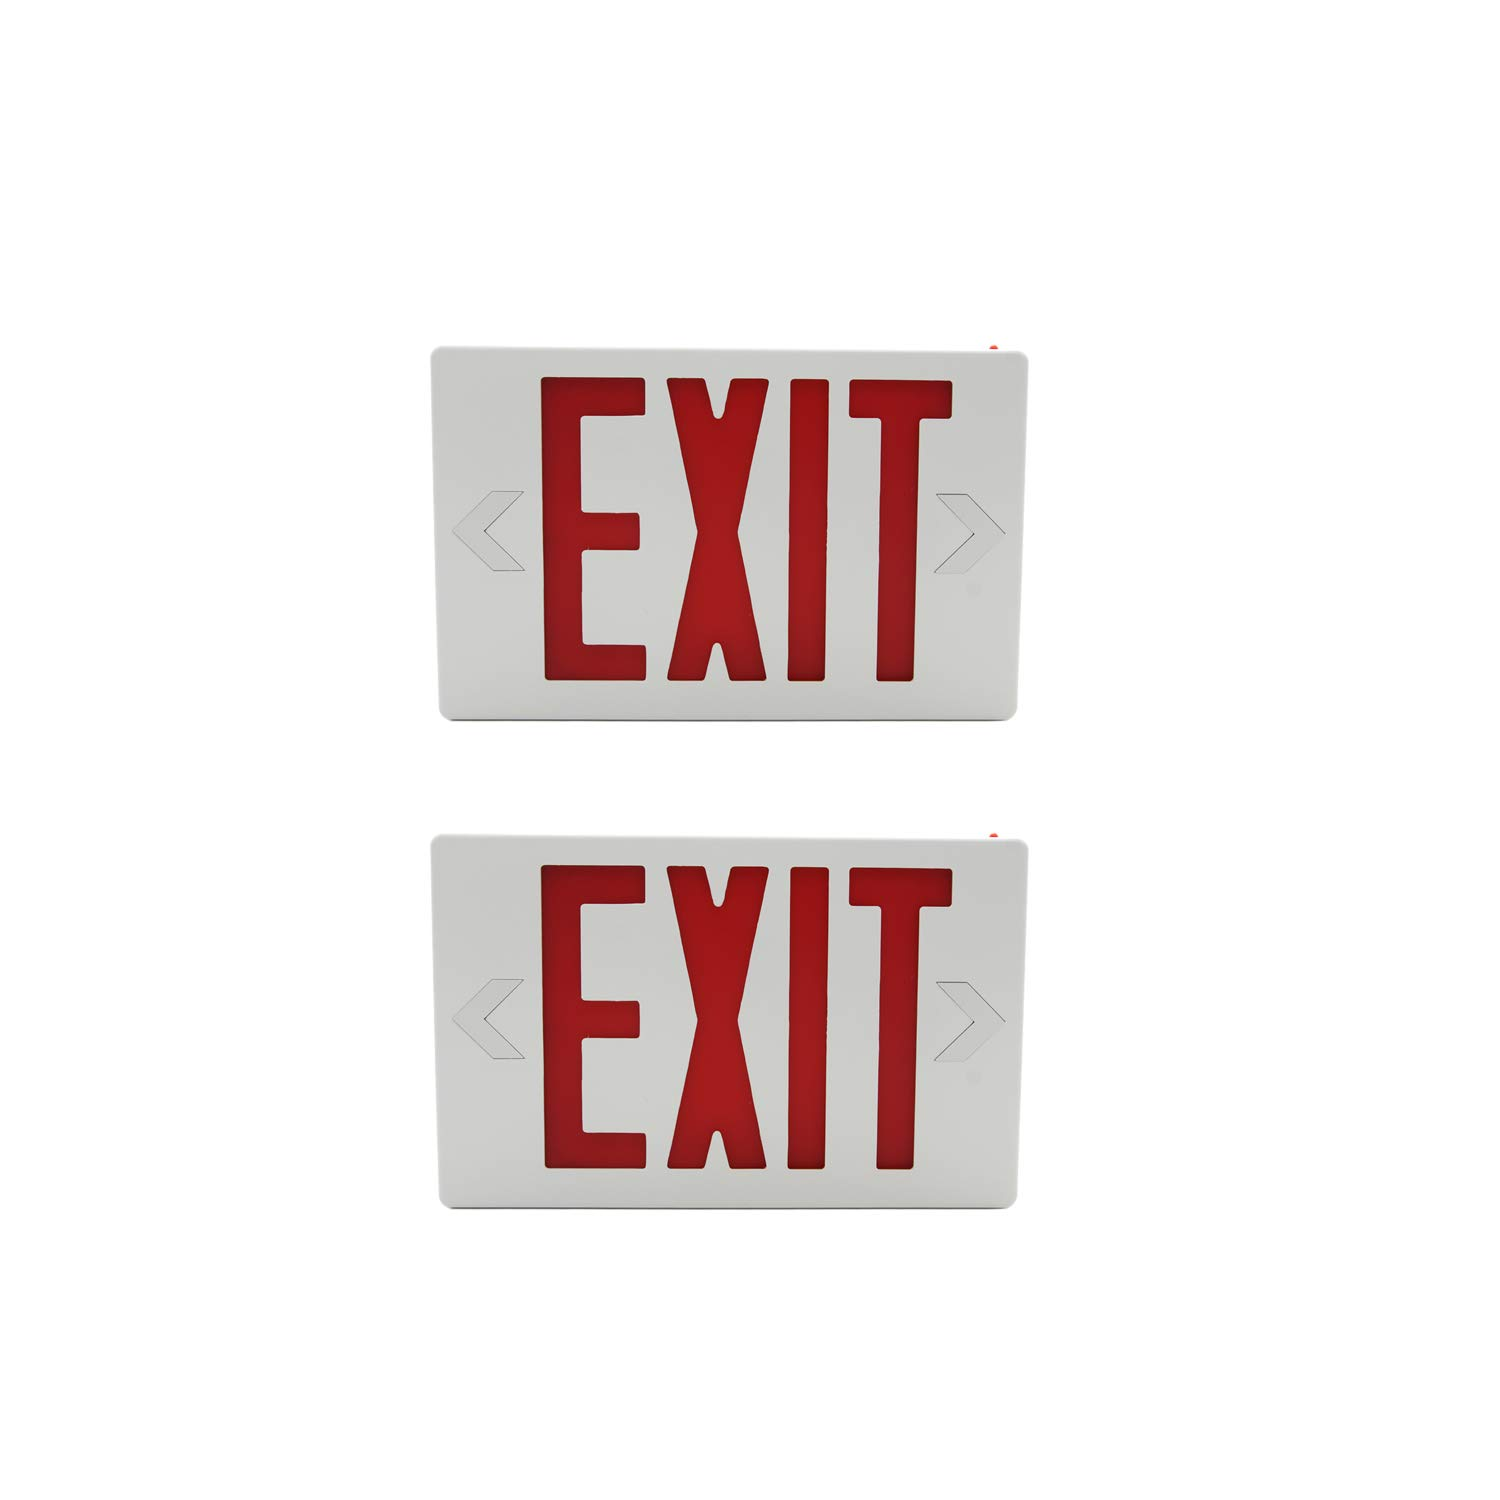 HYD-Parts 2 Packs of LED Exit Sign Emergency Light,UL Certified - Hardwired Red LED Exit Sign, Modern Design - Battery Backup - Emergency Fire Safety